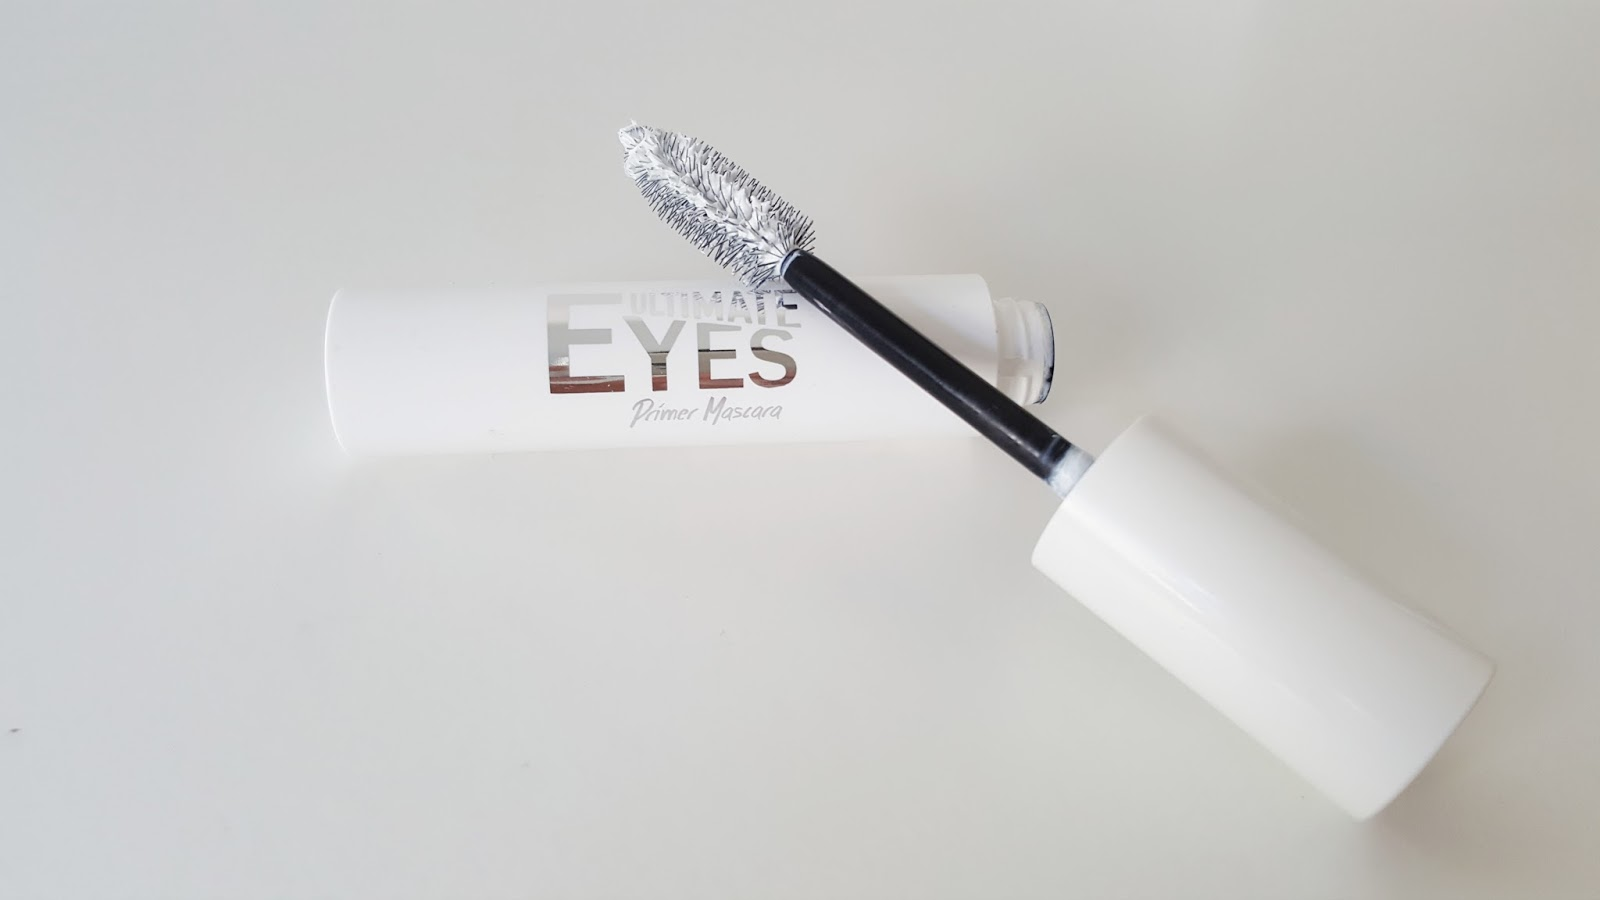 Ultimate Eyes Primer Mascara Flormar